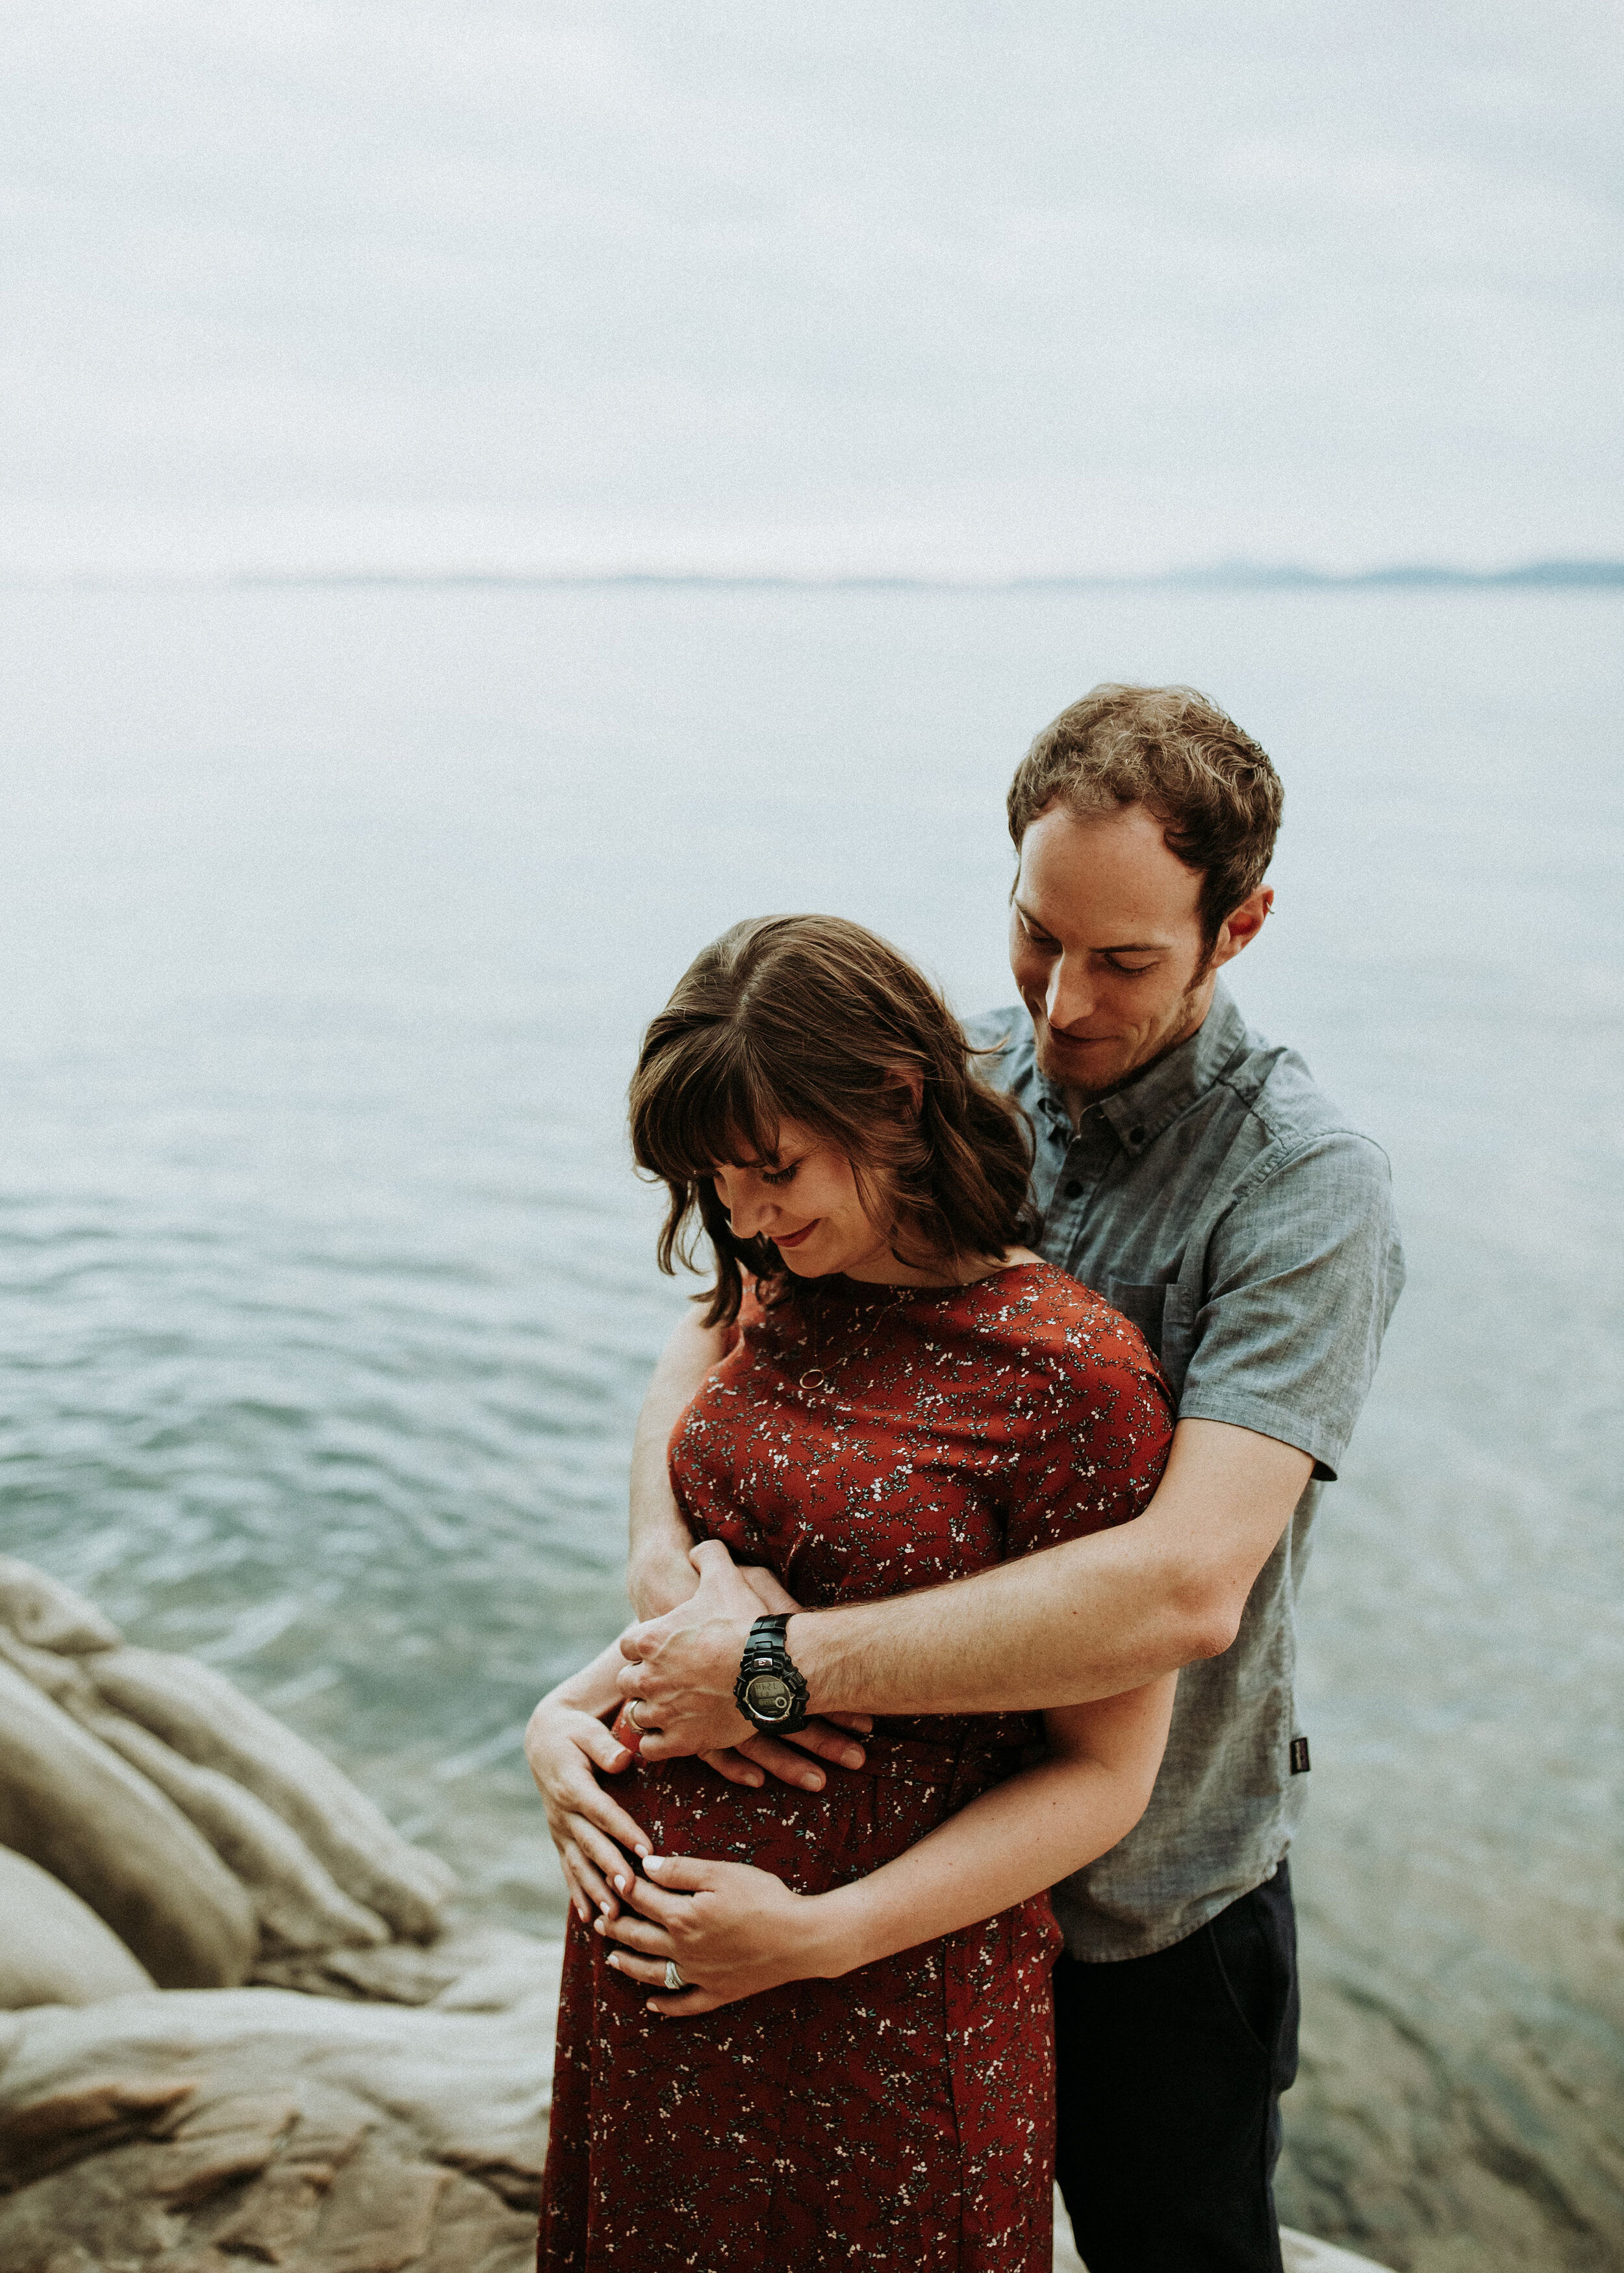 Maternity-Photographer-Bellingham-Wa-Brianne-Bell-Photography-Jensen